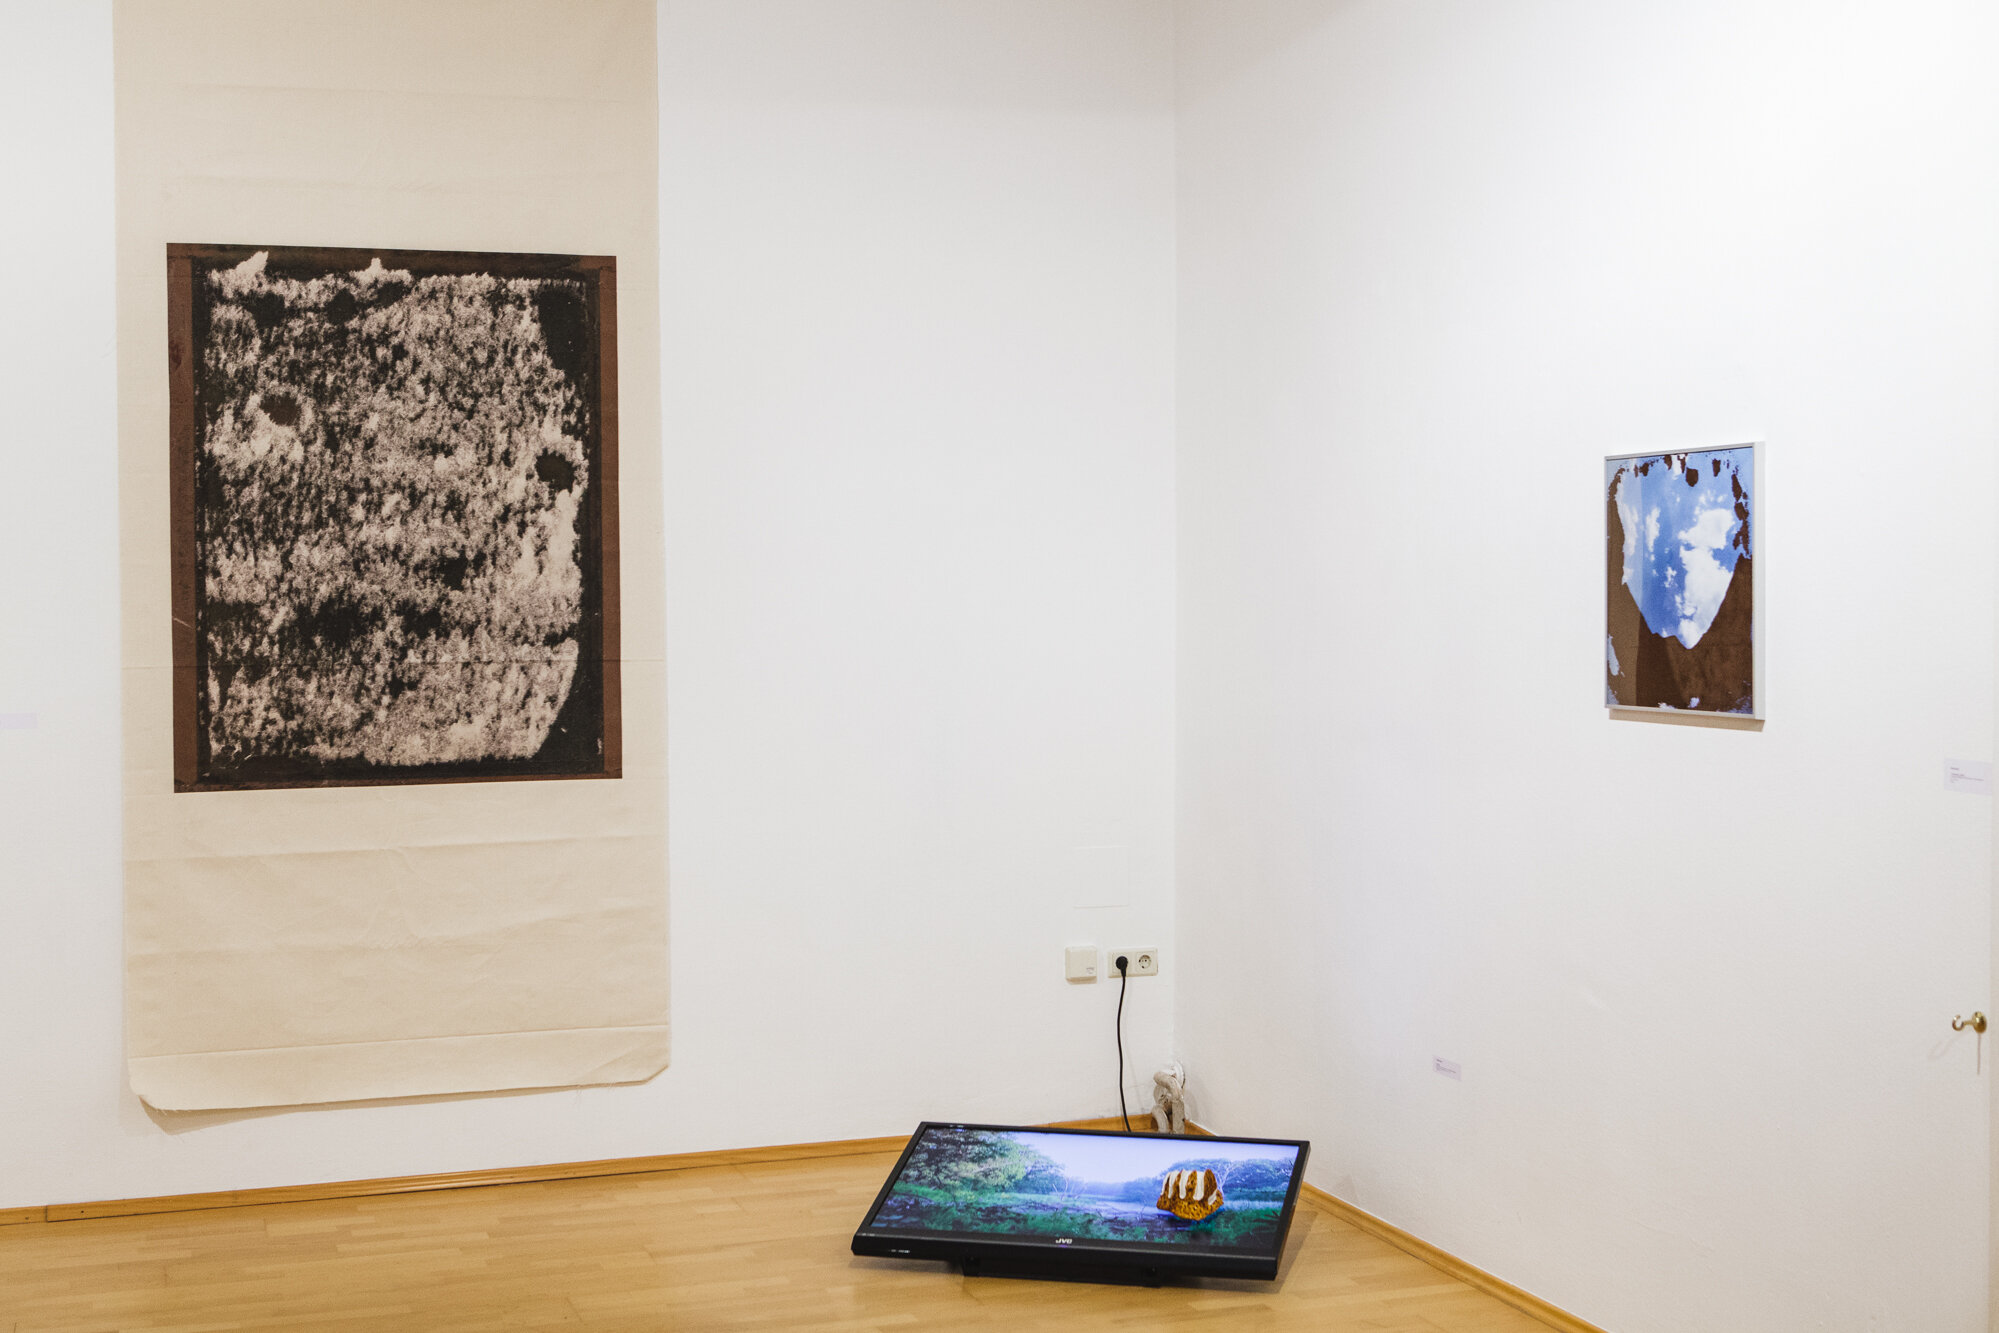 """- Exhibition view. """"Going south"""", a group show at Galerie Marenizi. Photo credit: Manuel Carreon Lopez."""